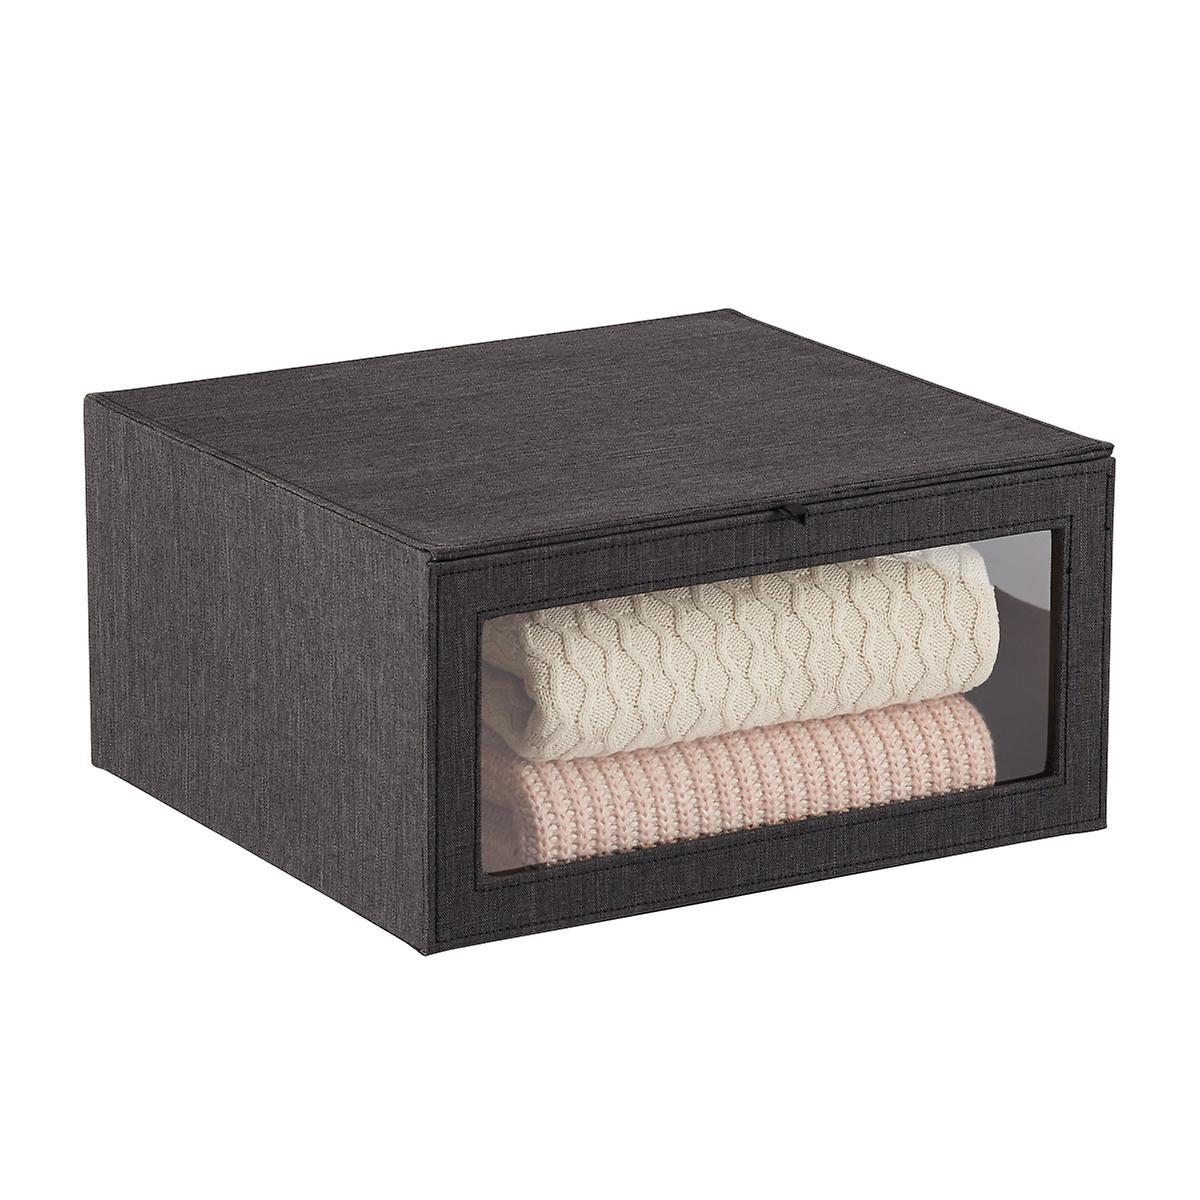 Black Drop Front Sweater Box by Container Store